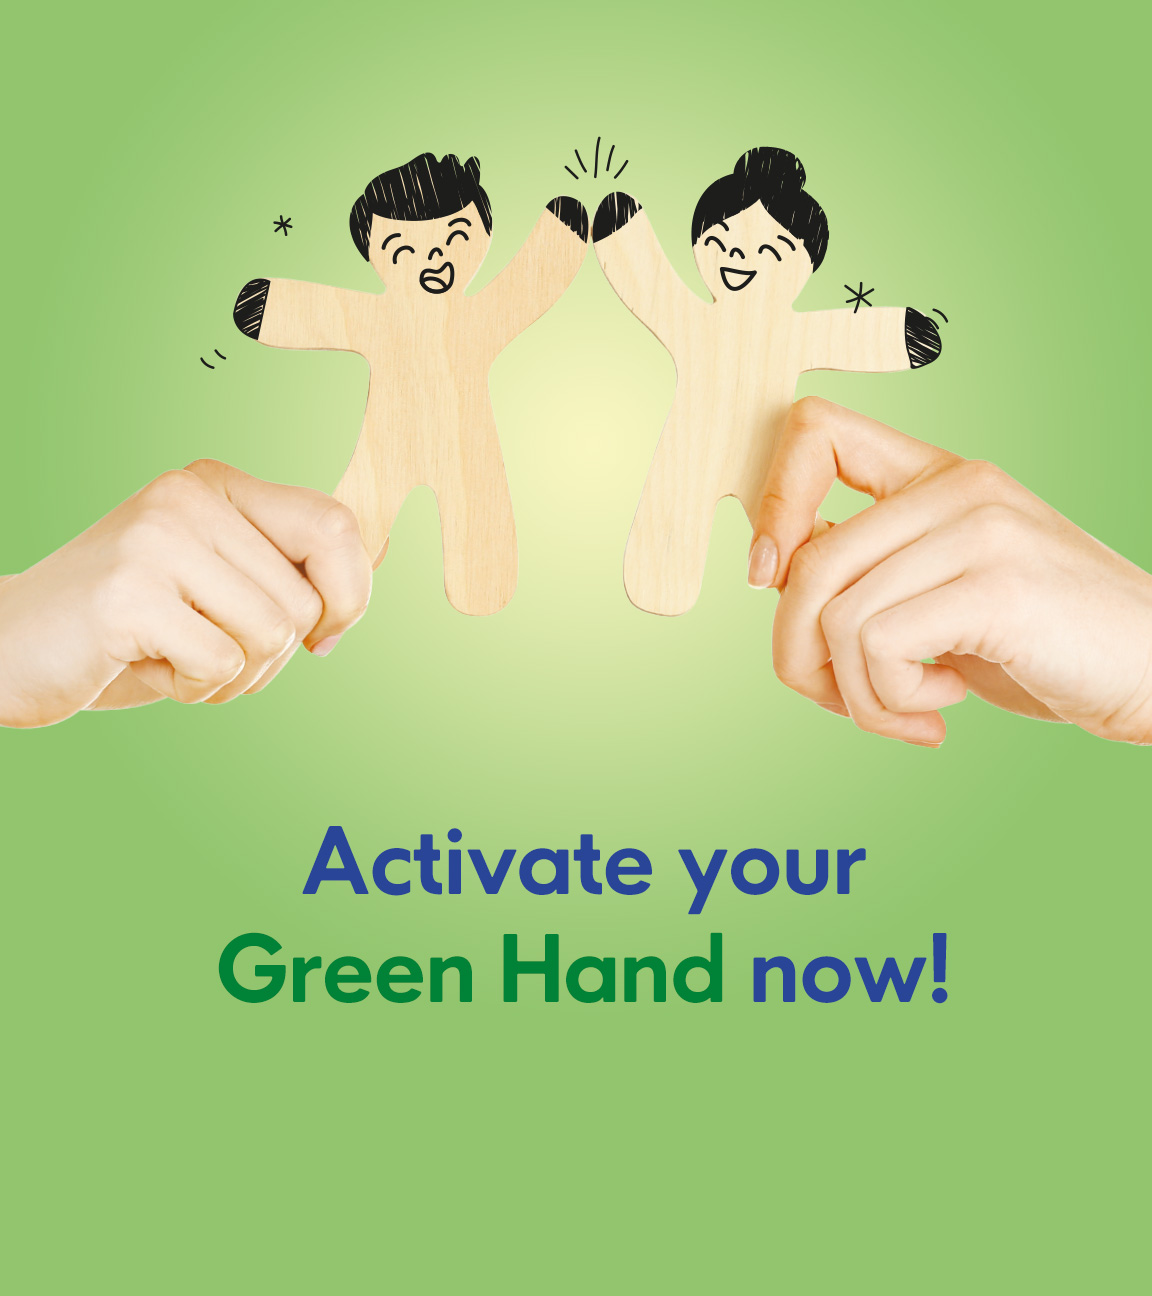 Activate Your Green Hand Now